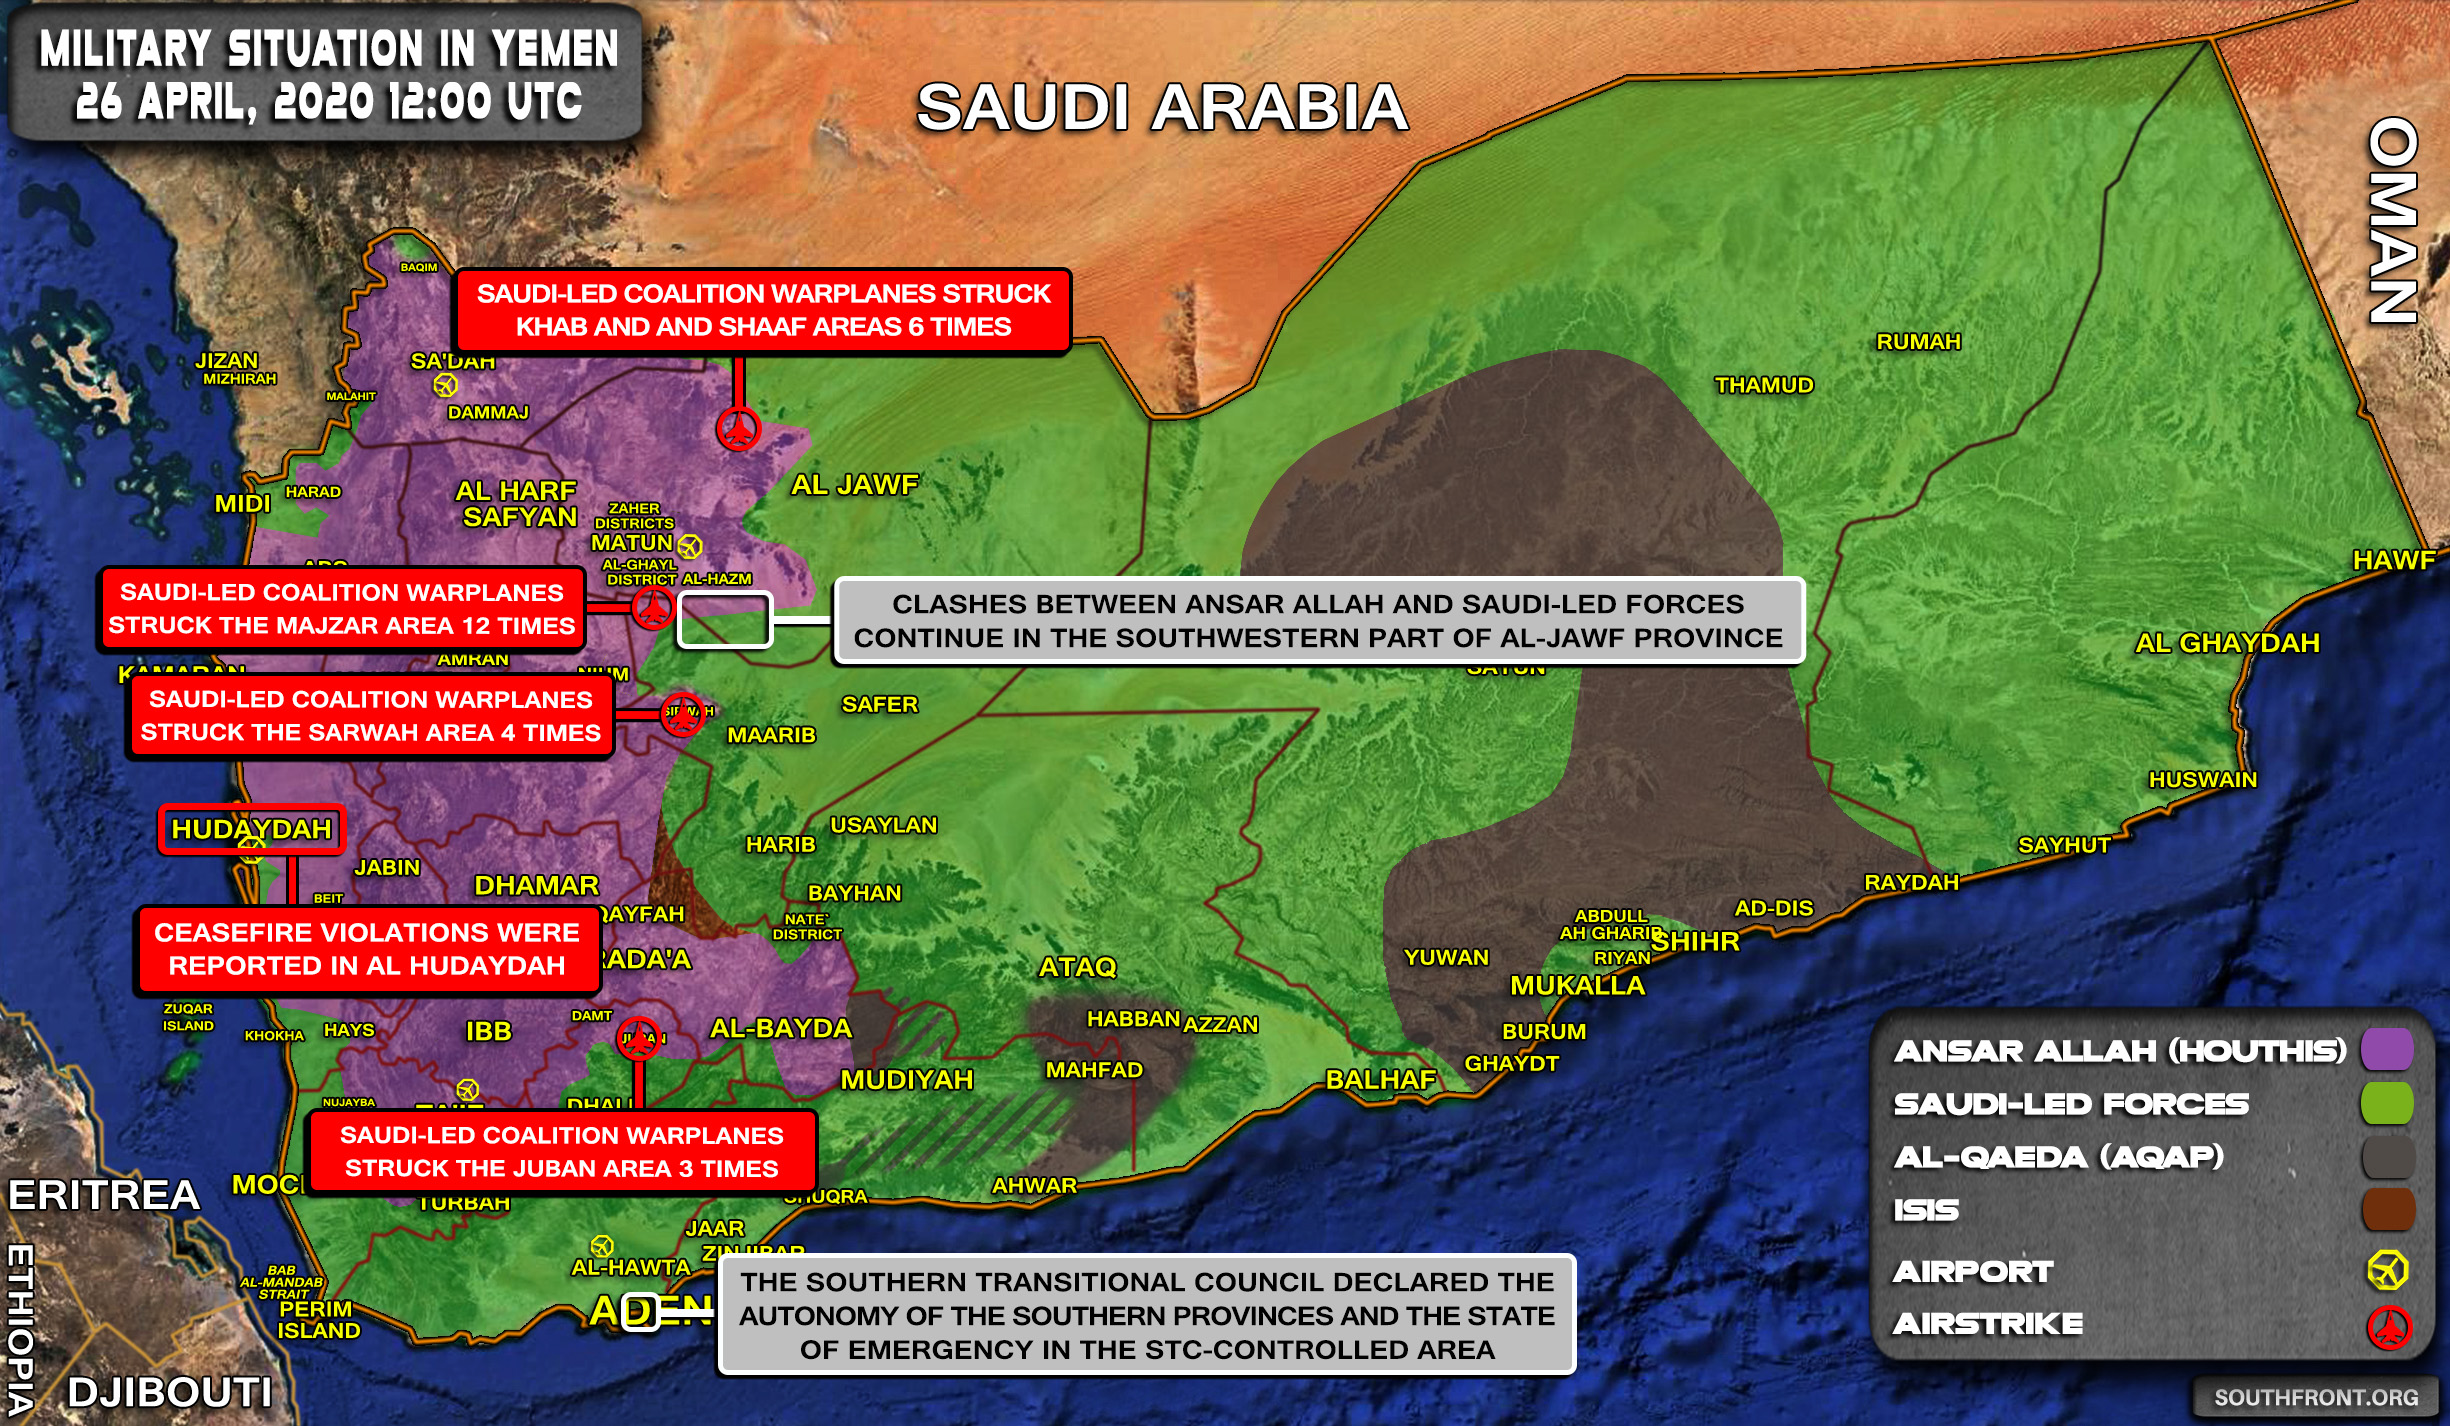 Military Situation In Yemen On April 26, 2020 (Map Update)